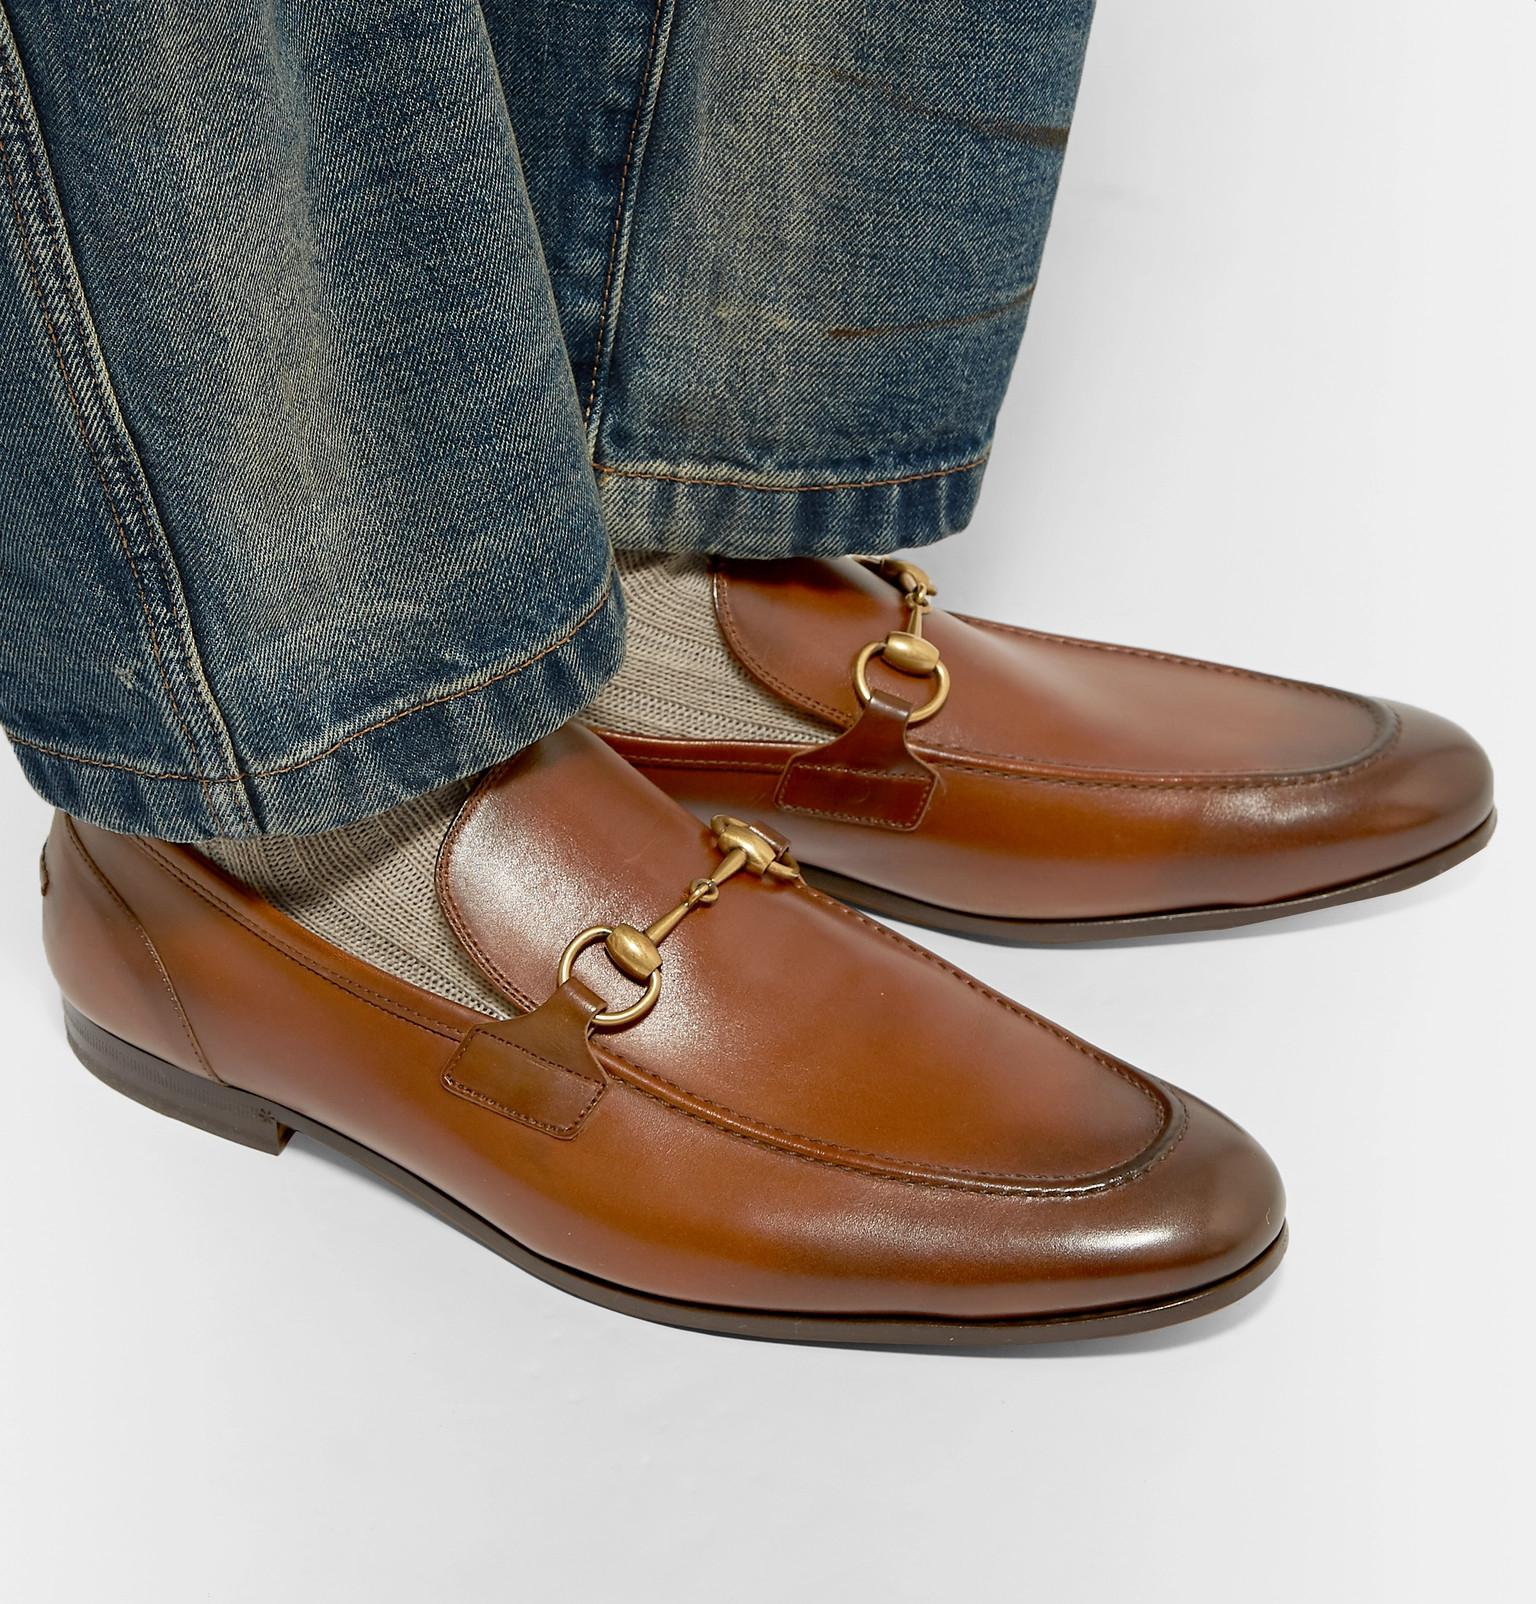 92db2f689ec Gucci Jordaan Horsebit Burnished-leather Loafers in Brown for Men - Lyst